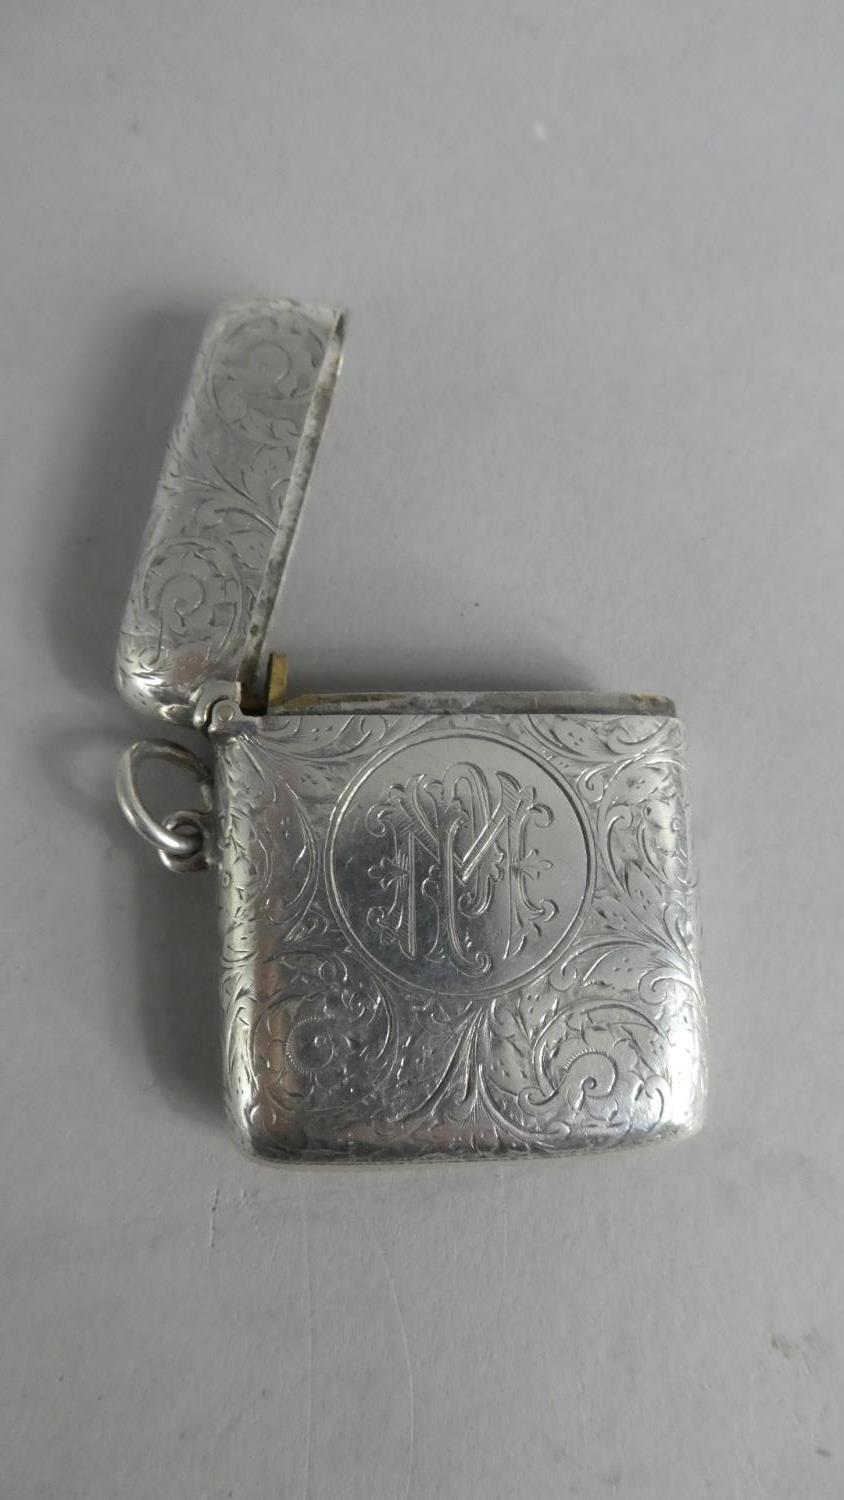 Lot 227 - A Silver Vesta with Engraved and Monogrammed Decoration. Chester 1907